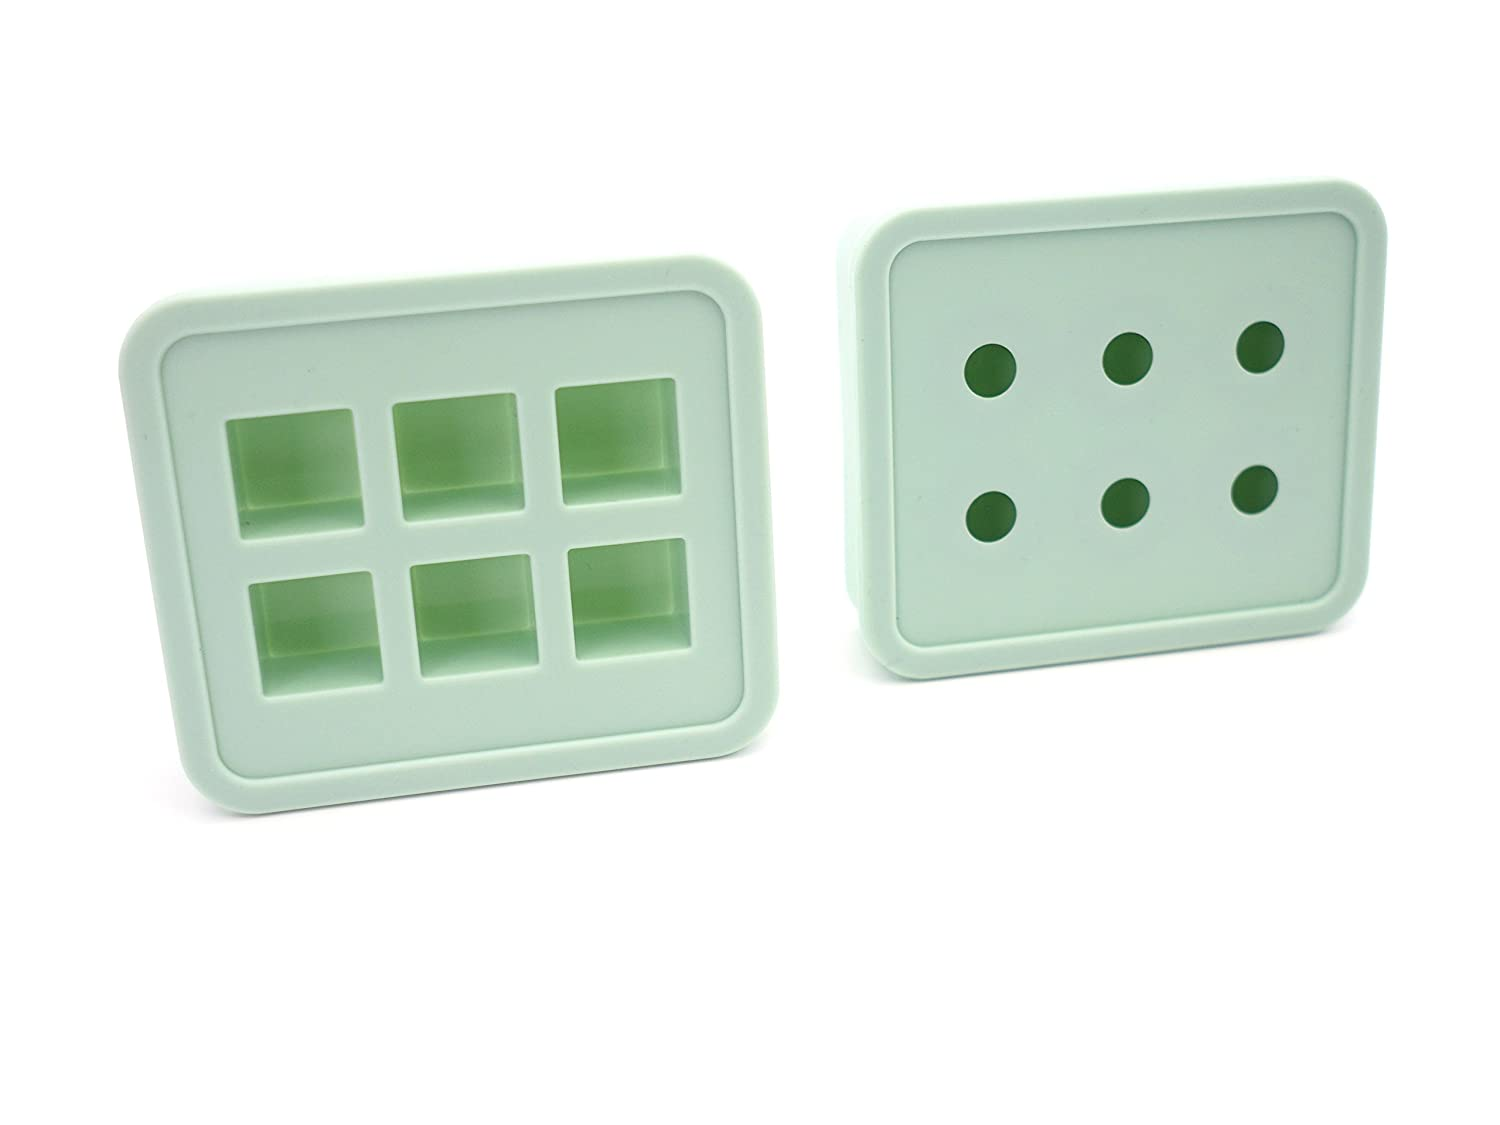 Creationtop DIY Liquid Resin Molds for Making Jewelry Necklace Pendant Charm Tools (Green set Cube/Ball) CT-RM-205